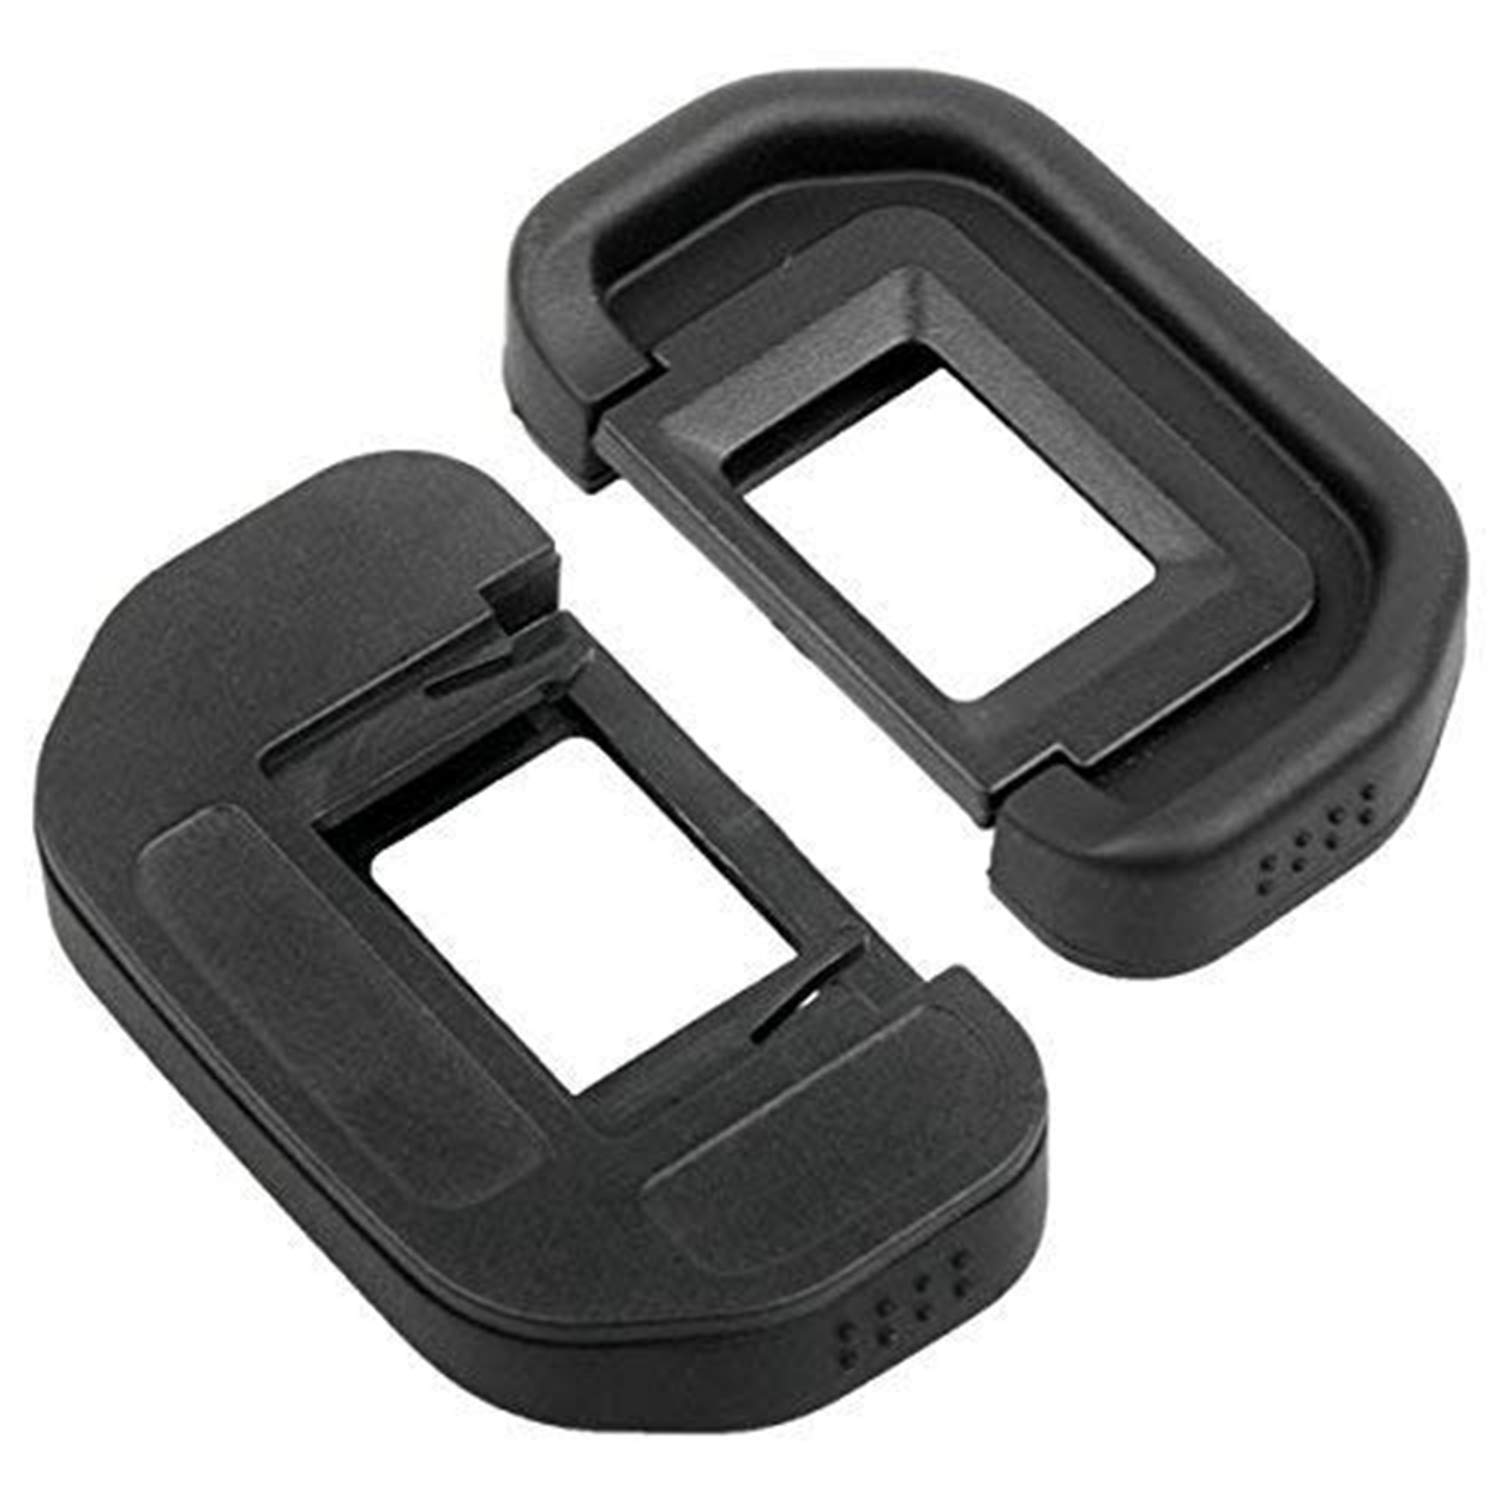 SODIAL Camera Eyepiece Eyecup 18Mm EB Replacement Viewfinder Protector for Canon Eos 80D 70D 60D 77D 50D 5D 5D Mark Ii 6D 6D Mark Ii 40D 30D 20D 20Da 10D 60Da A2 A2E D30 D60